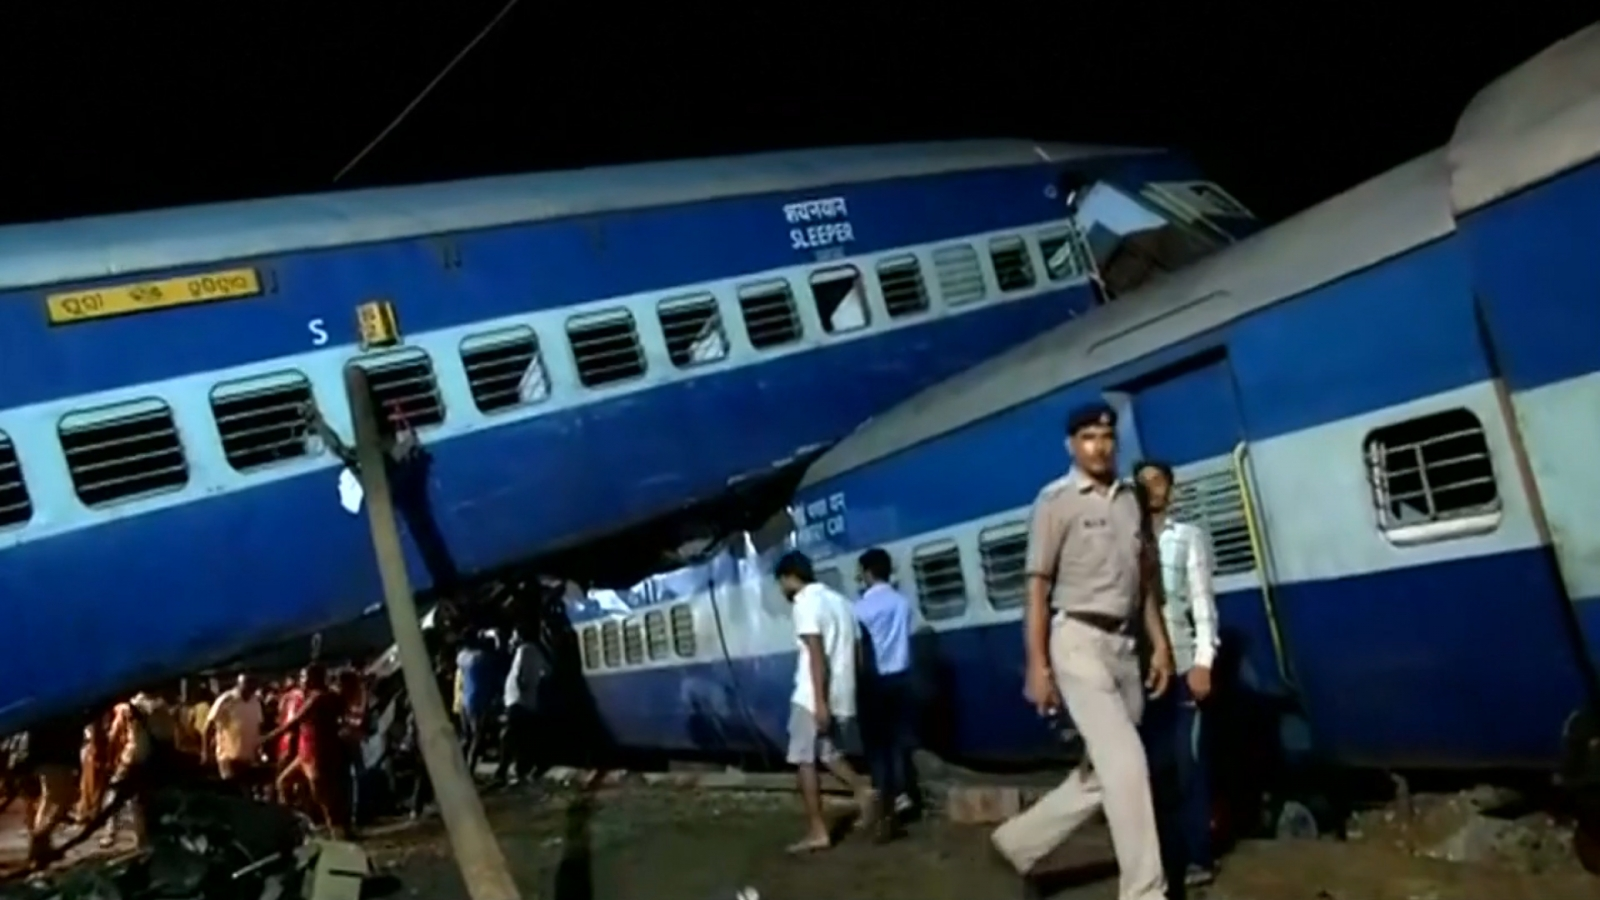 india-at-least-23-dead-and-over-100-injured-after-huge-train-derailment